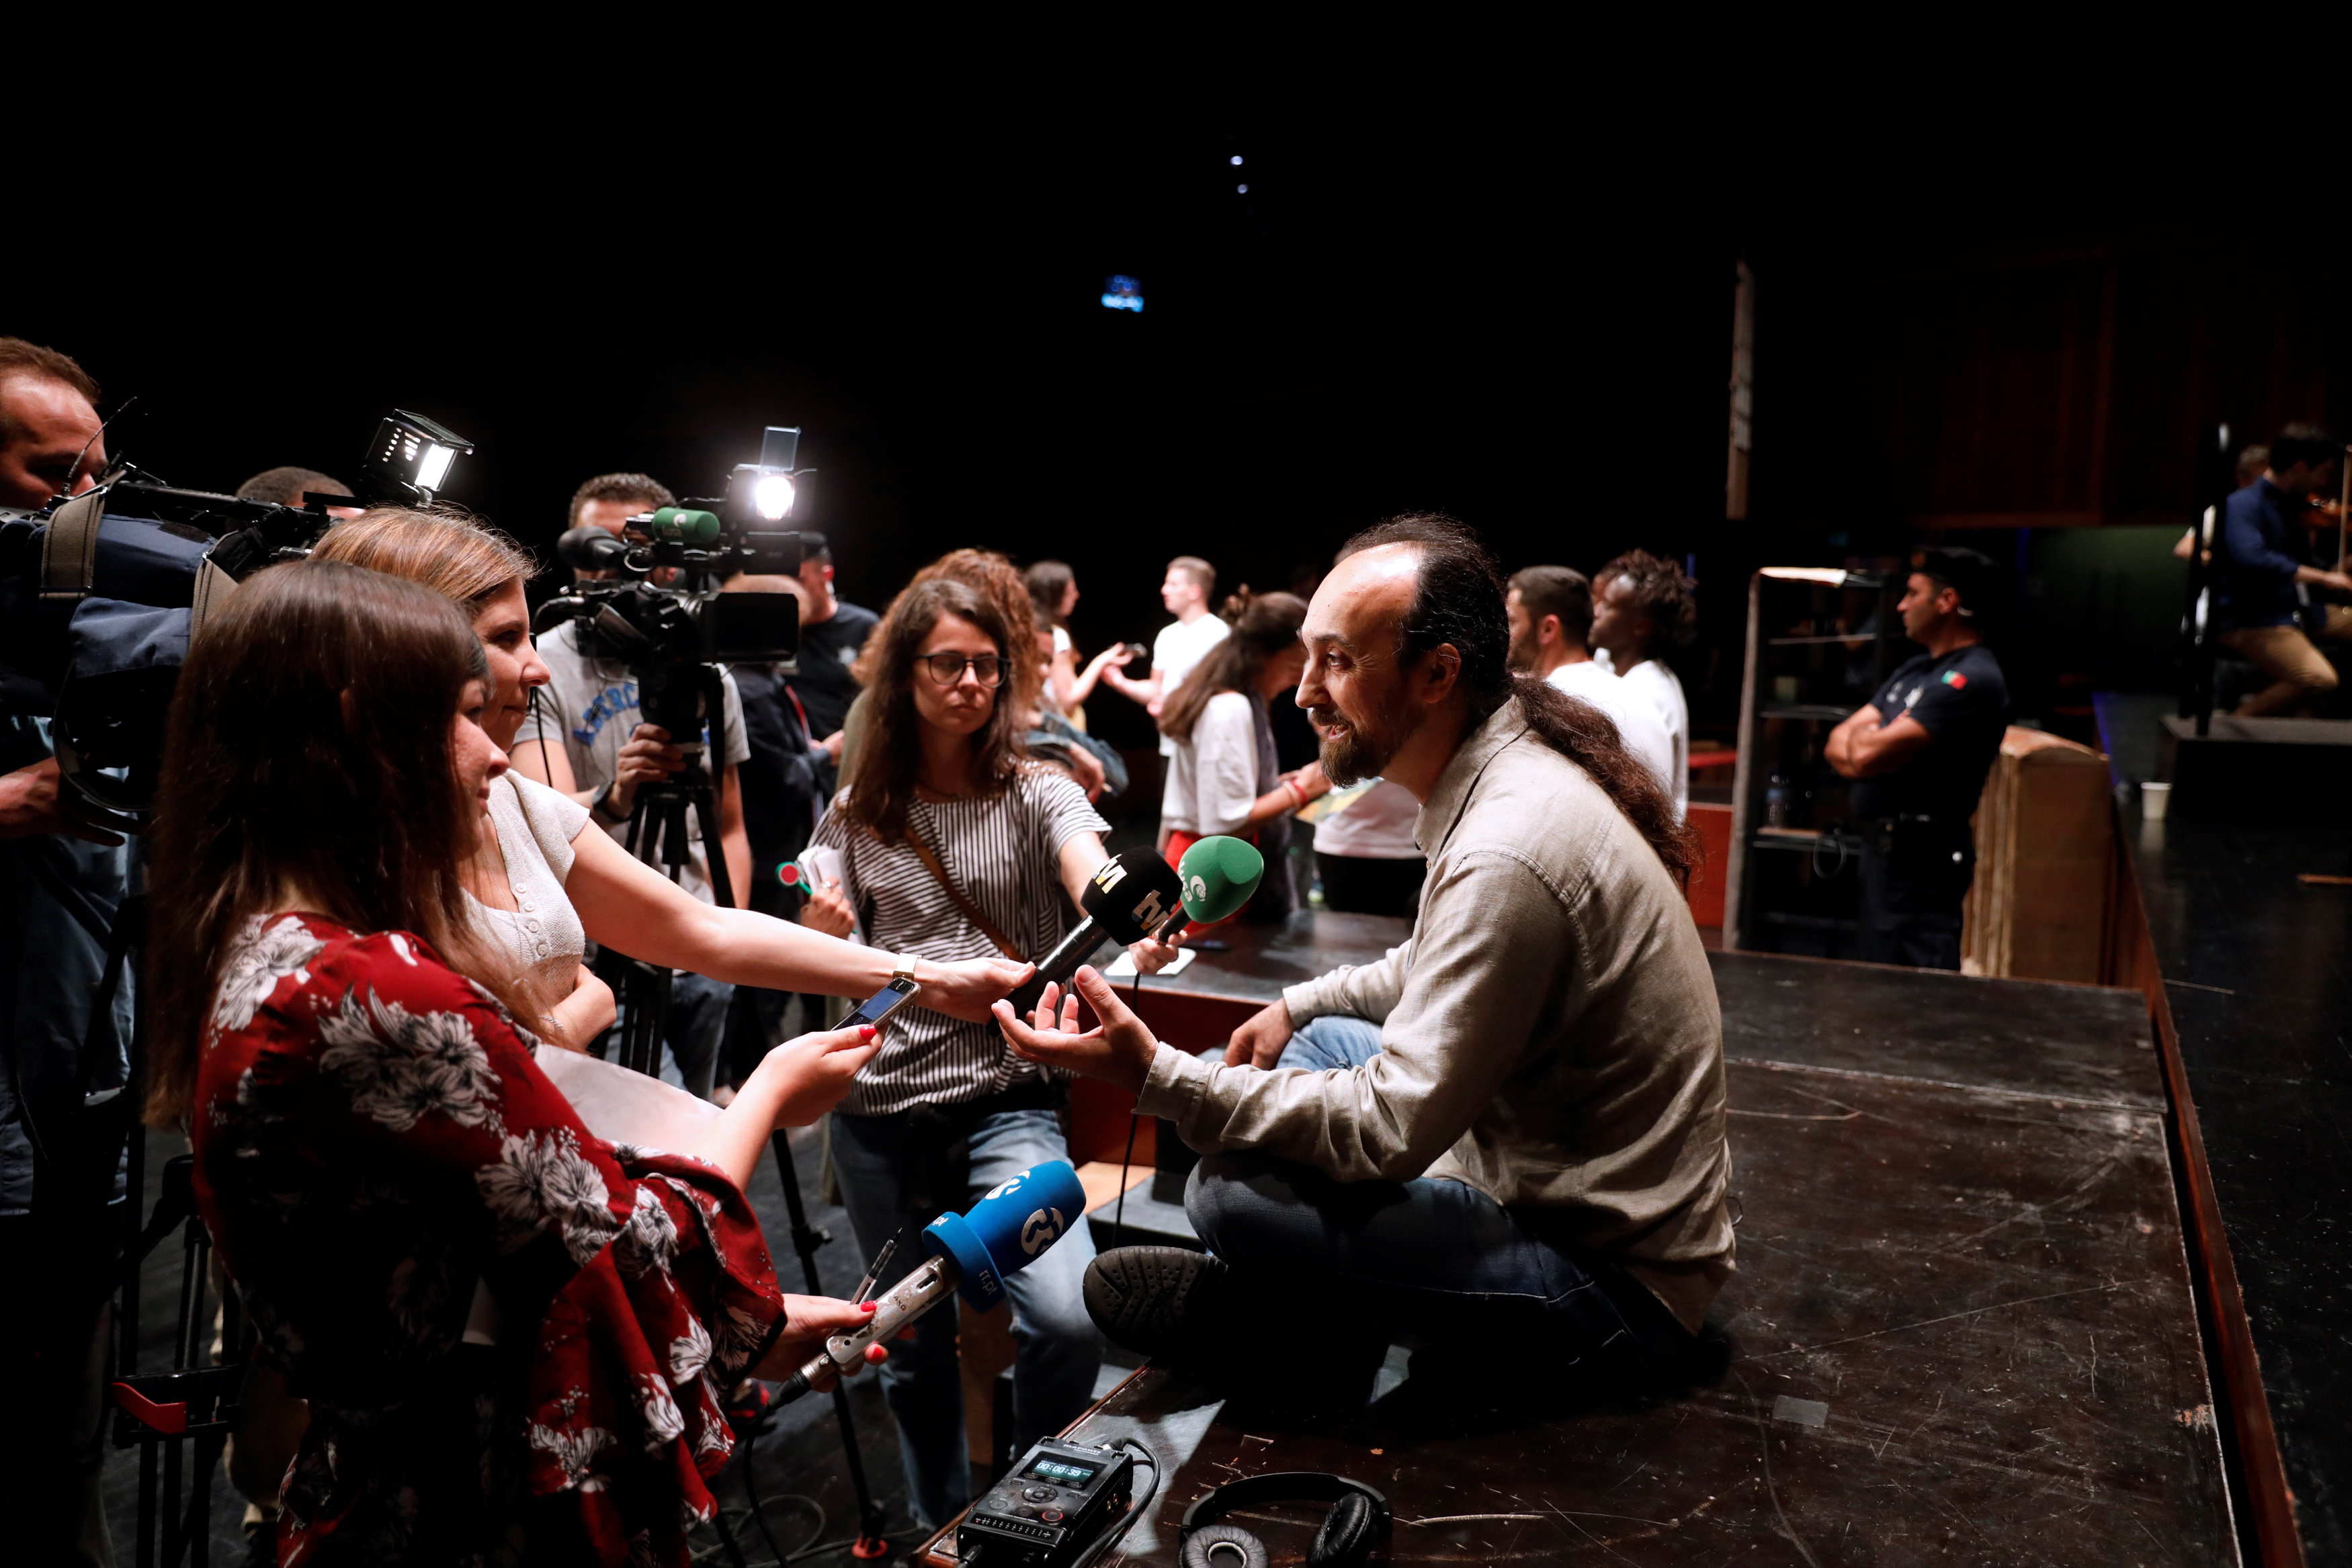 Paulo Lameiro, director of the Opera in Prison project, speaks to the media after a rehearsal at Calouste Gulbenkian Foundation in Lisbon